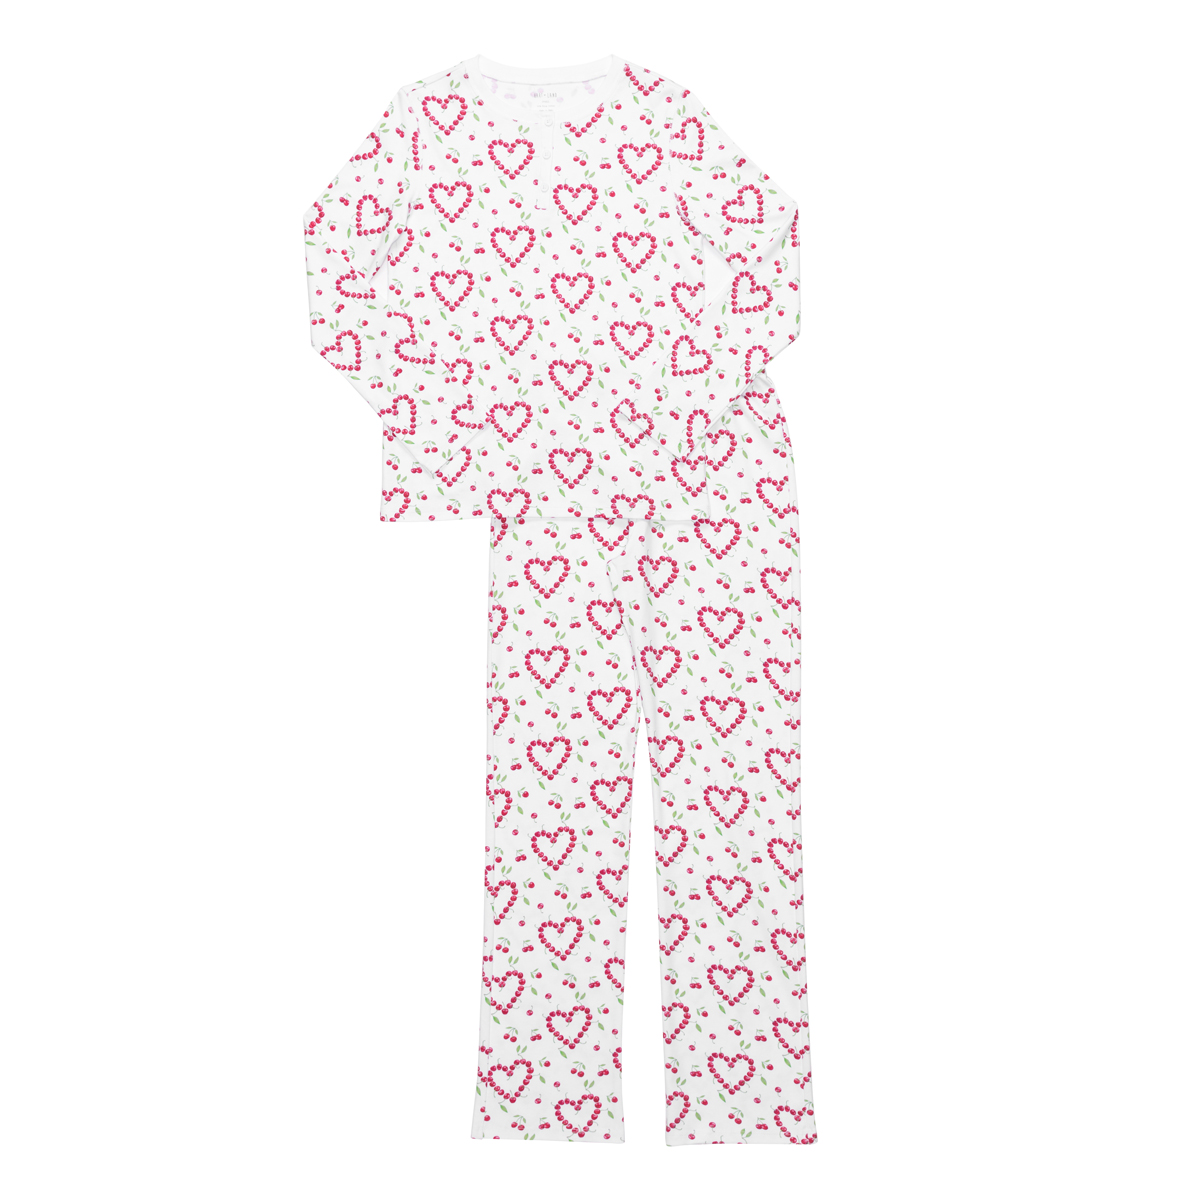 HART + LAND Women's Pima Cotton PJ Set